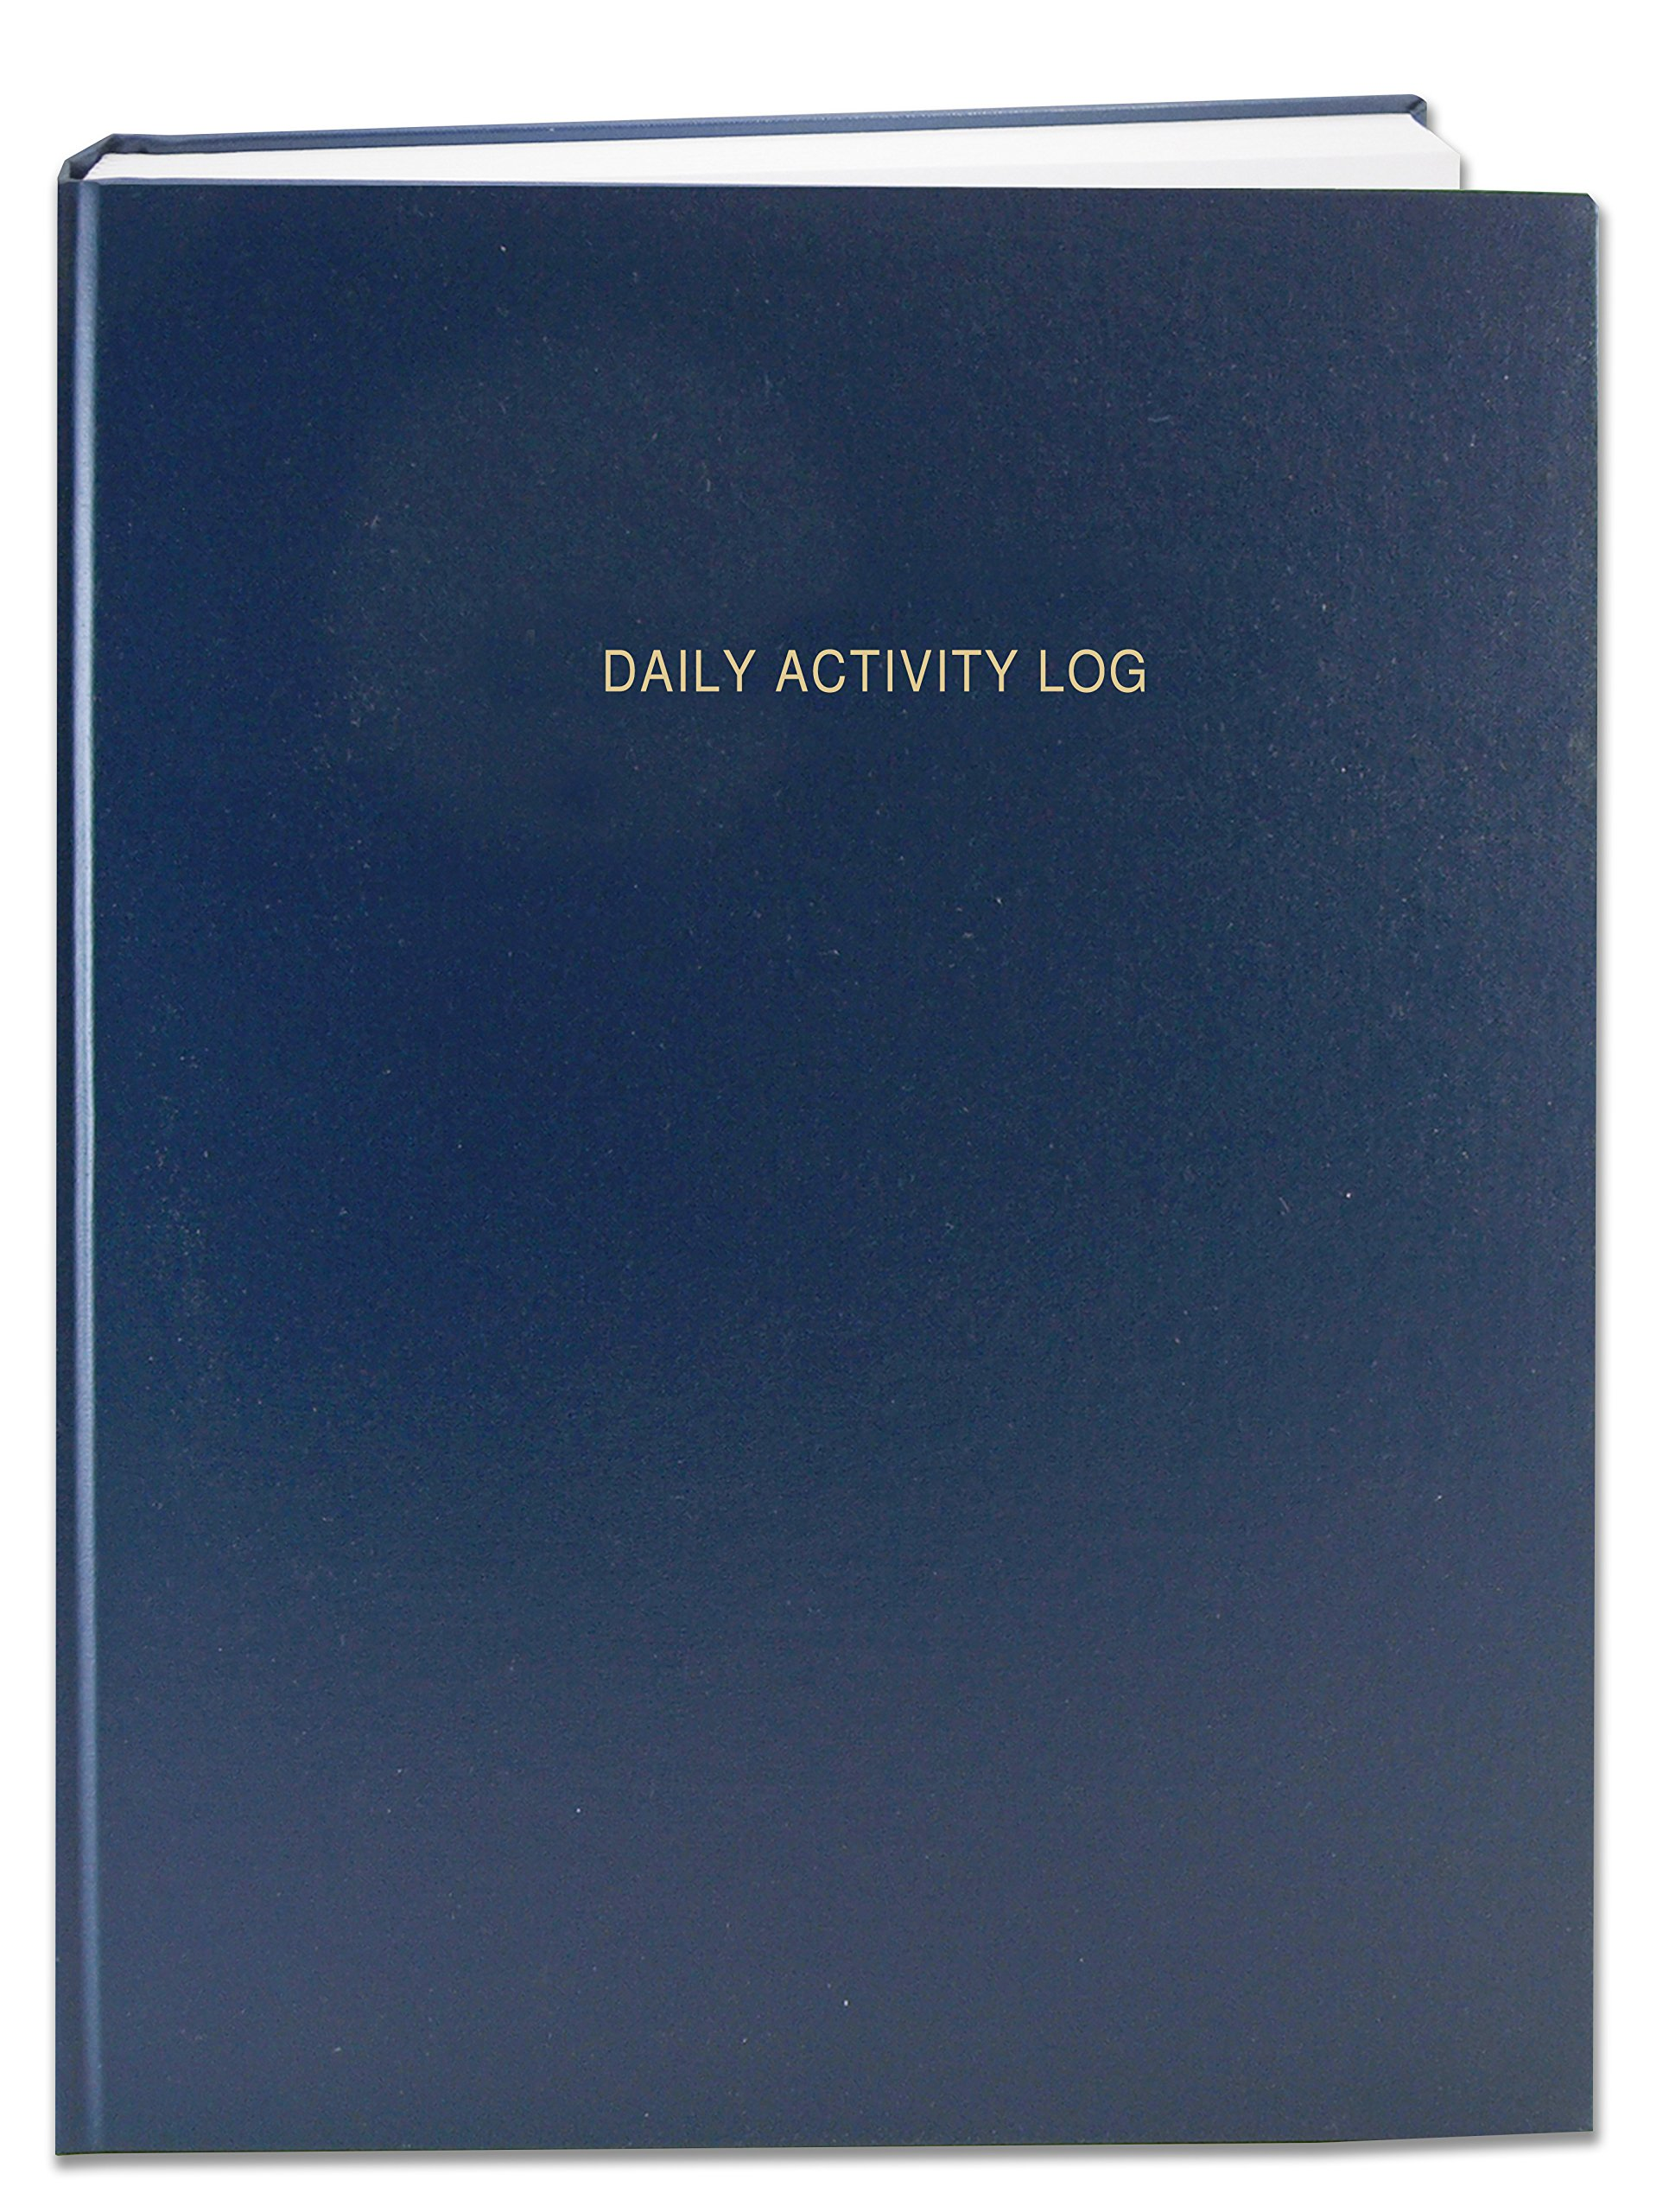 BookFactory Daily Activity Log Book / 365 Day Log Book (384 Pages) / 365 Page Diary, Blue Cover, Smyth Sewn Hardbound, 8 7/8'' x 11 1/4'' (LOG-384-DAY-A-LBT32)